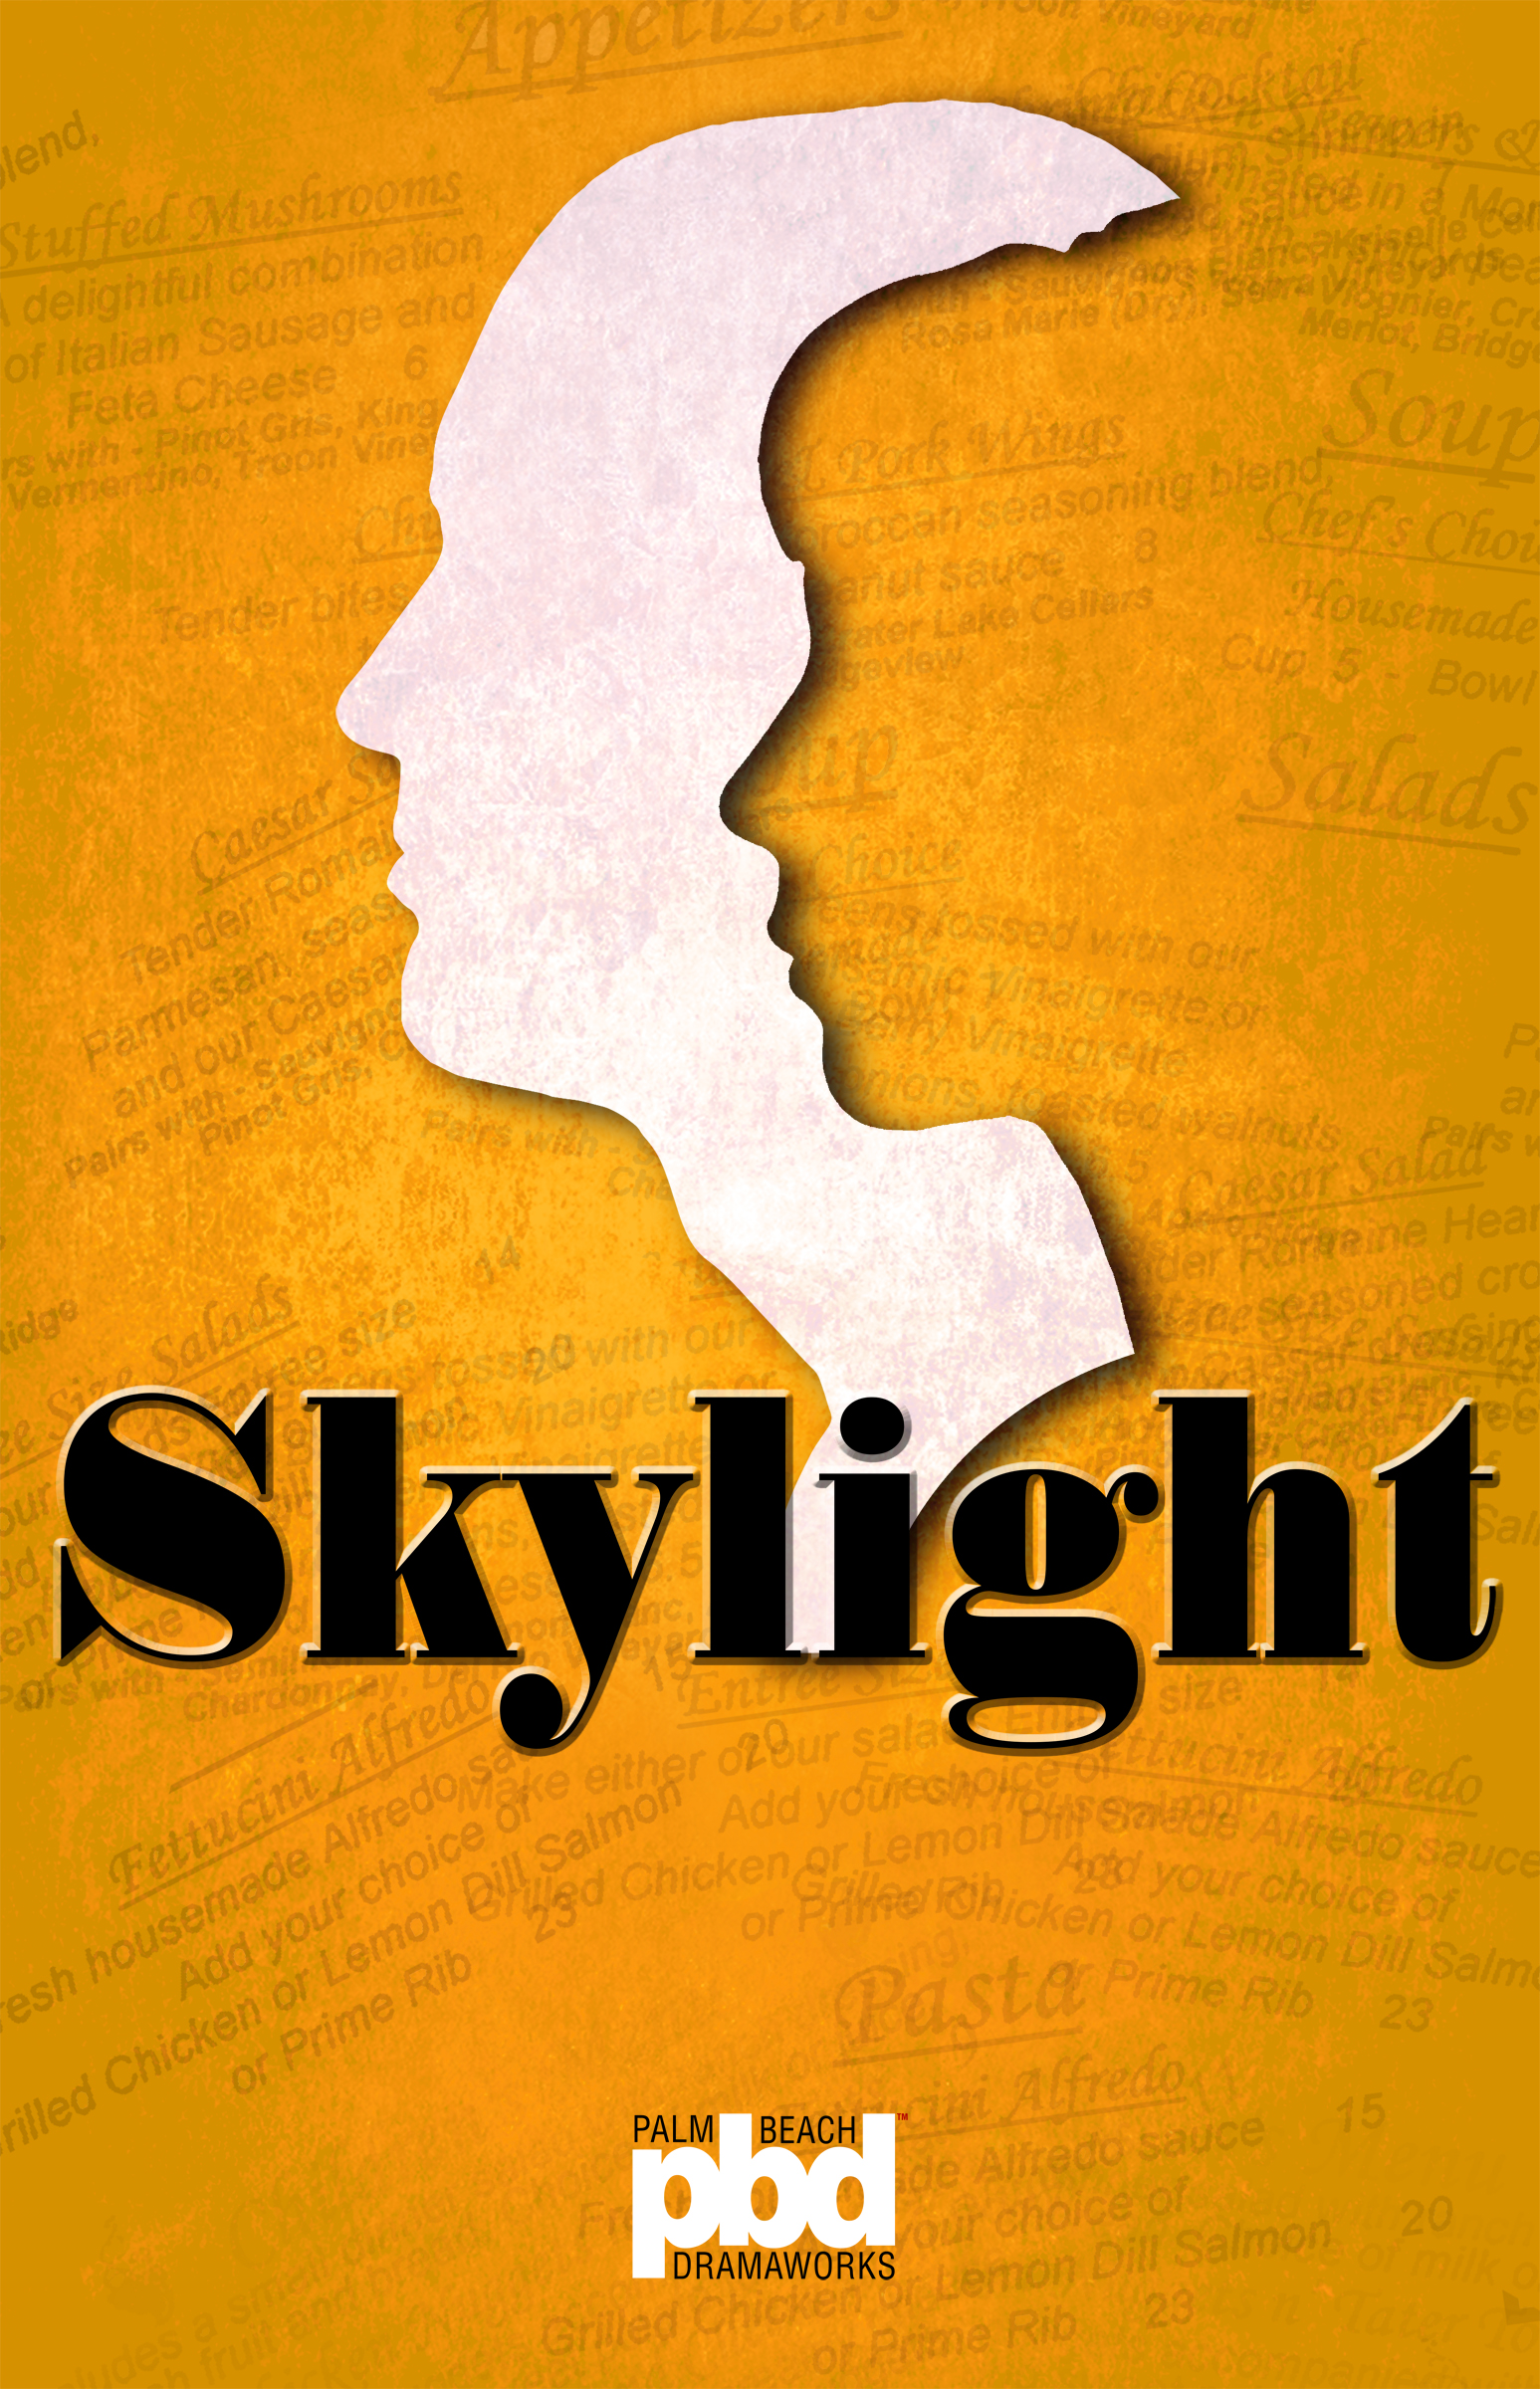 Skylight by David Hare